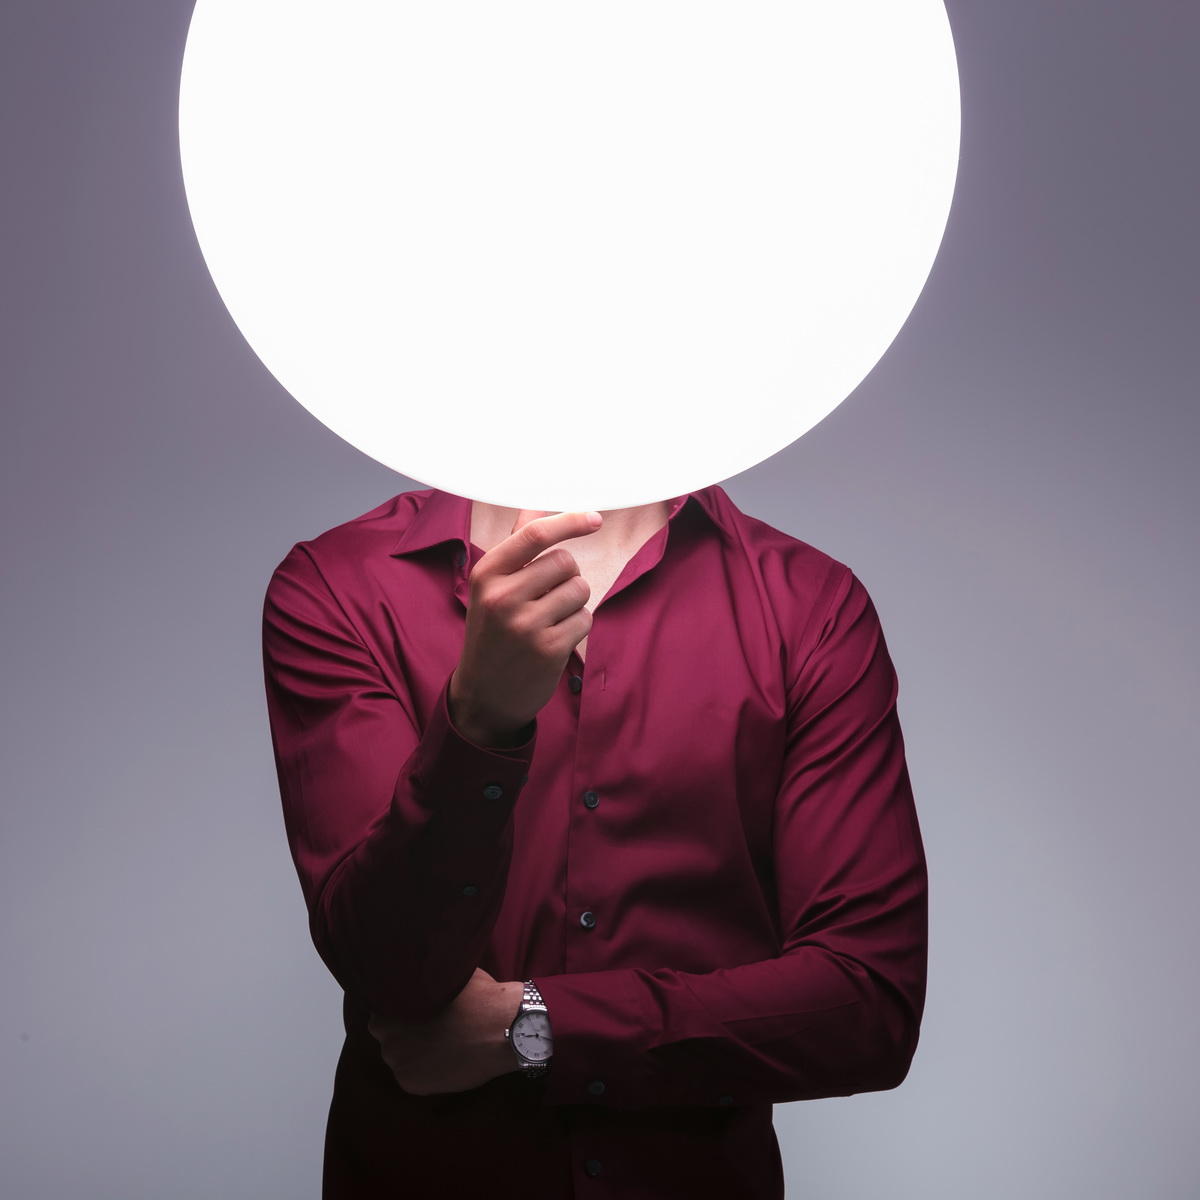 man with sphere of light as head is thinking on studio background